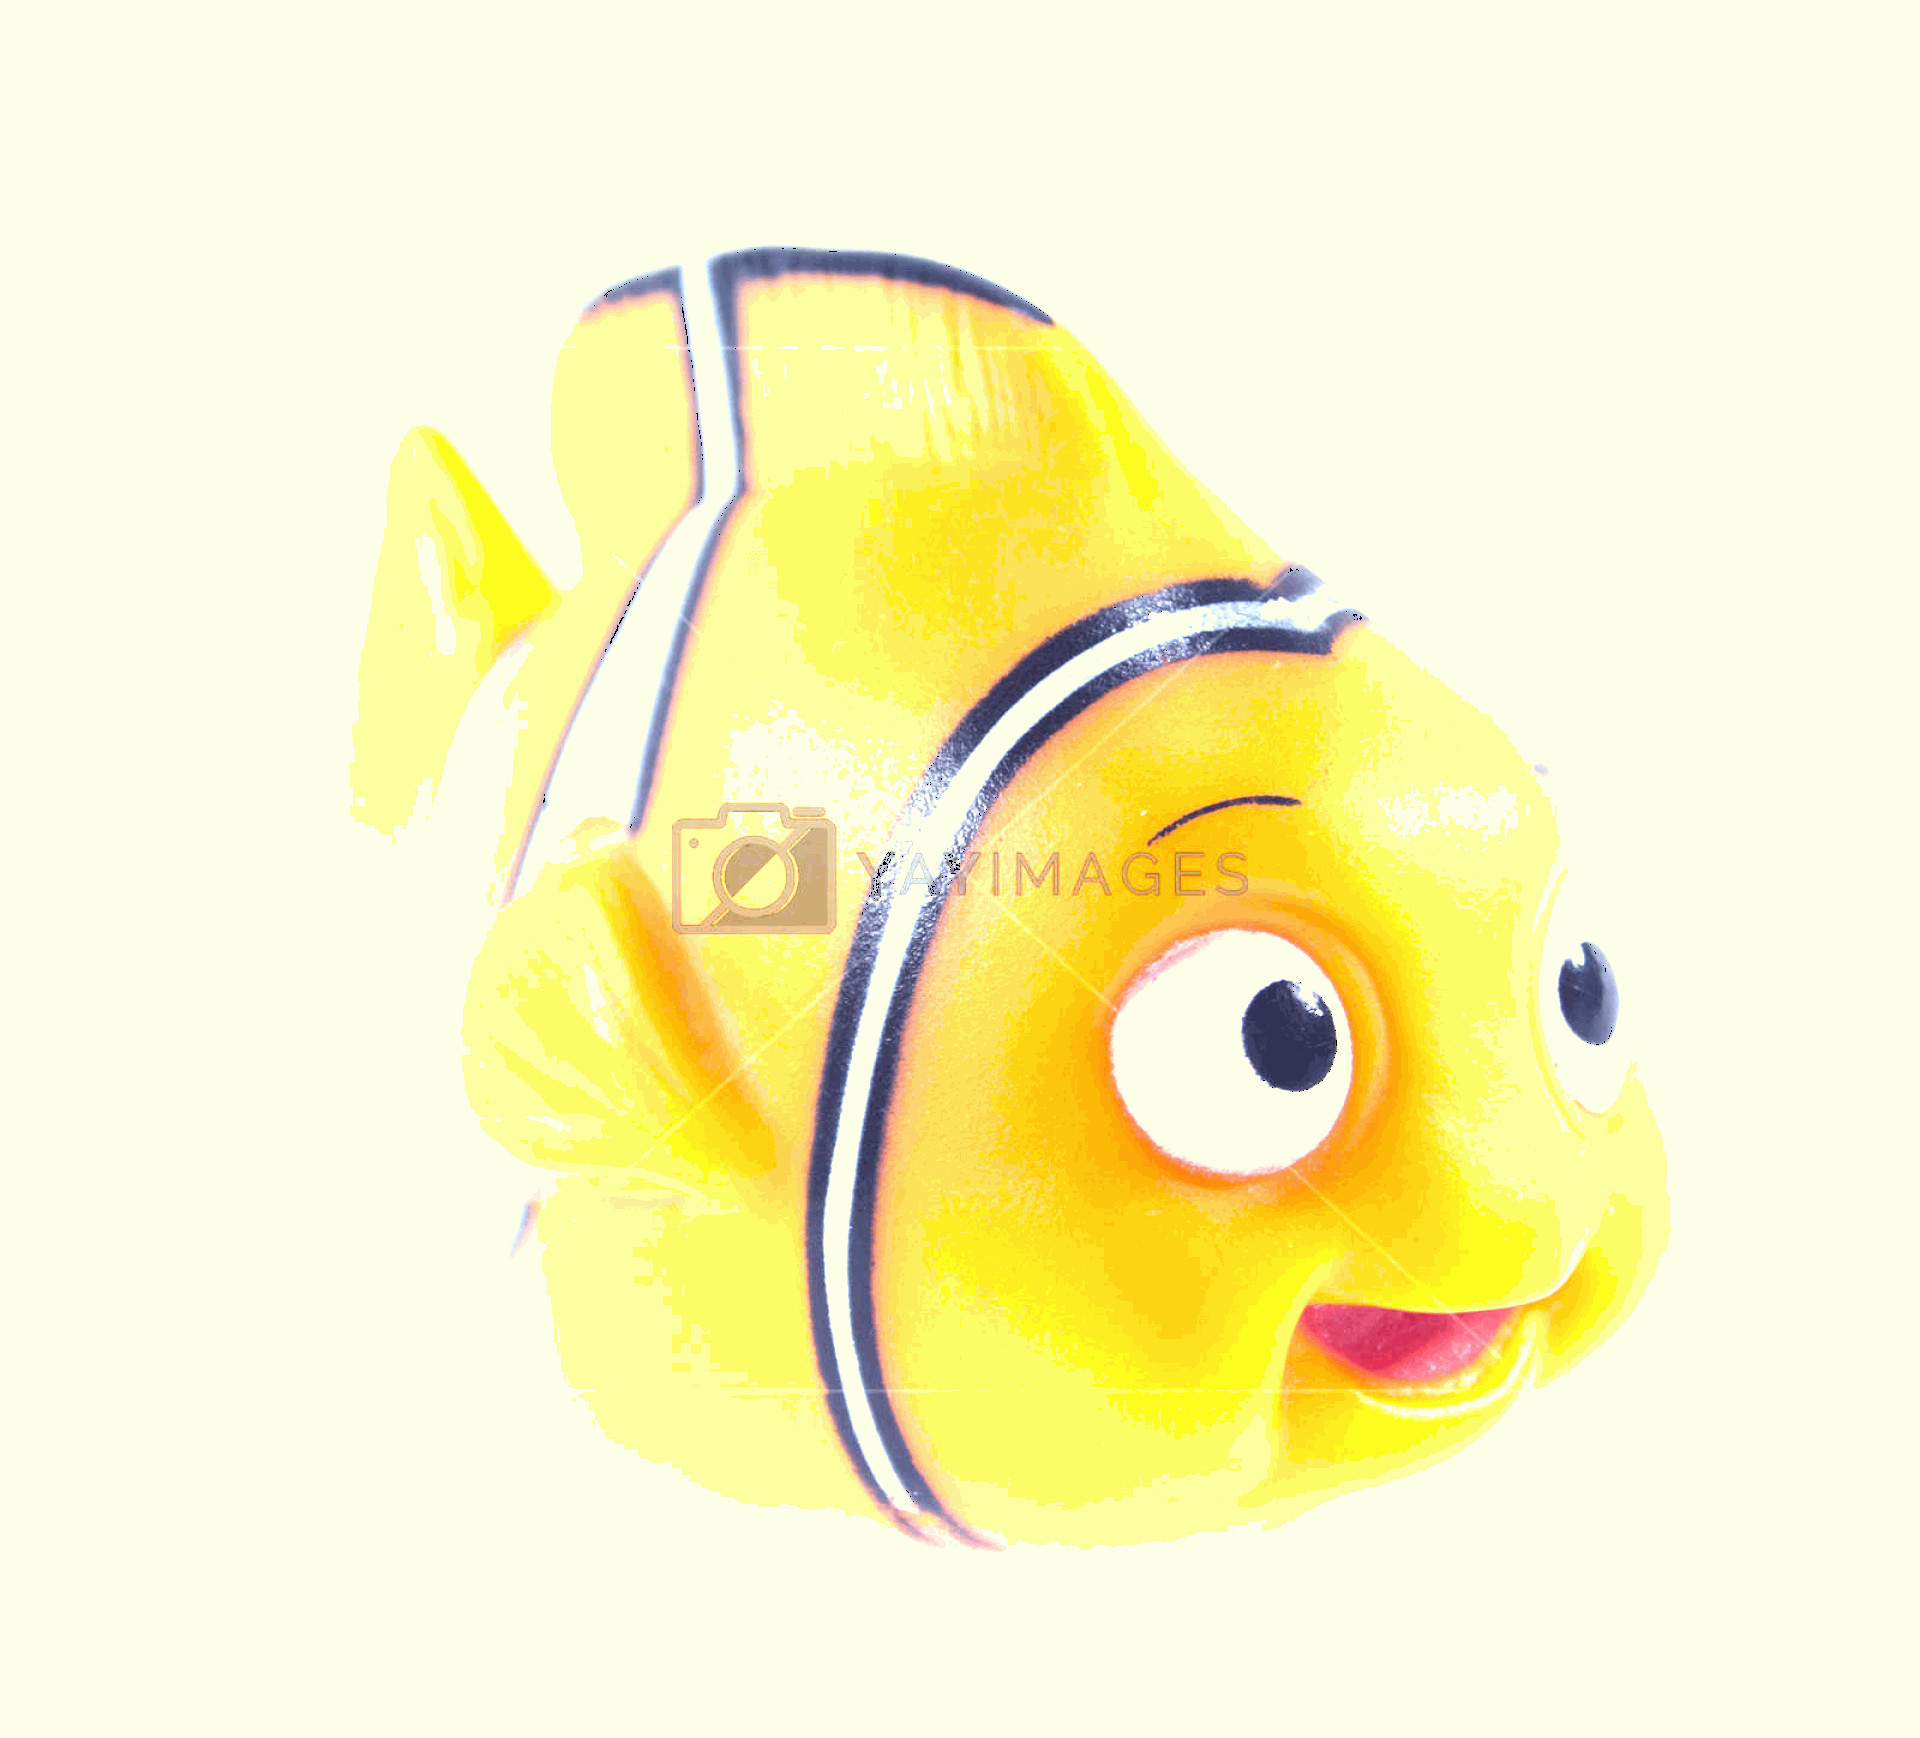 Vector Finding Nemo Fish: Fish Toy Character Of Finding Nemo